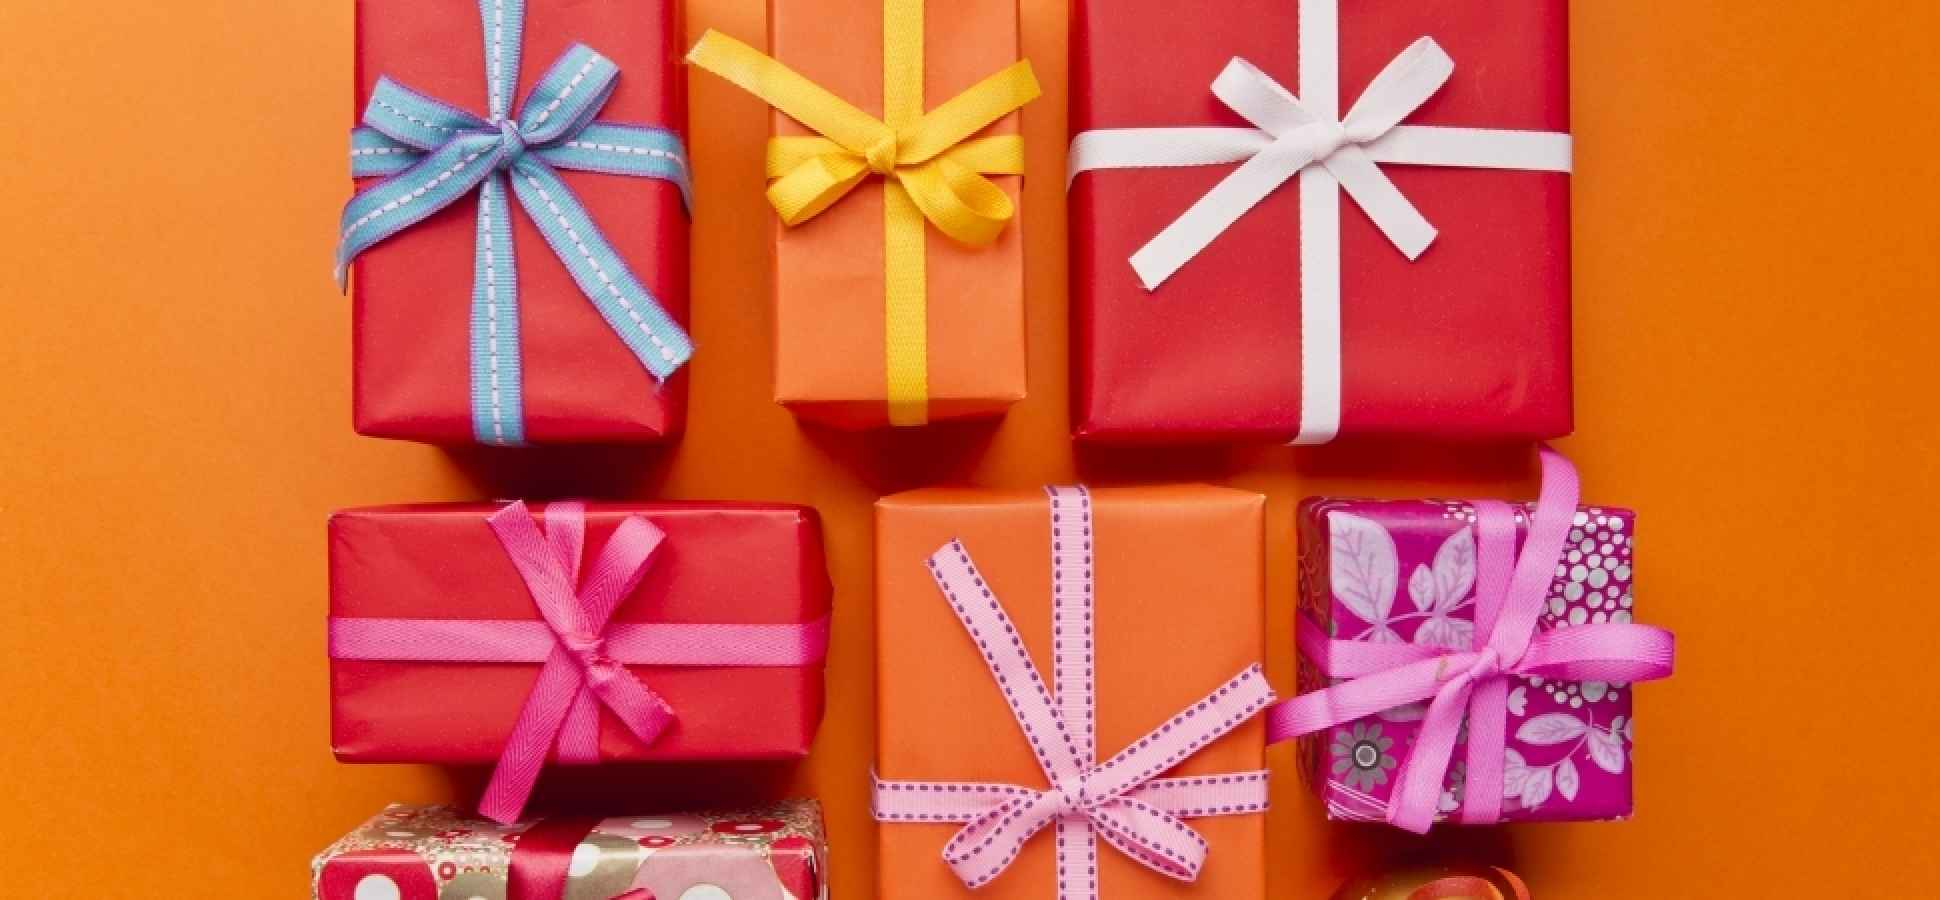 What Are the 9 Best Types of Gifts to Give Your Customers? | Inc.com